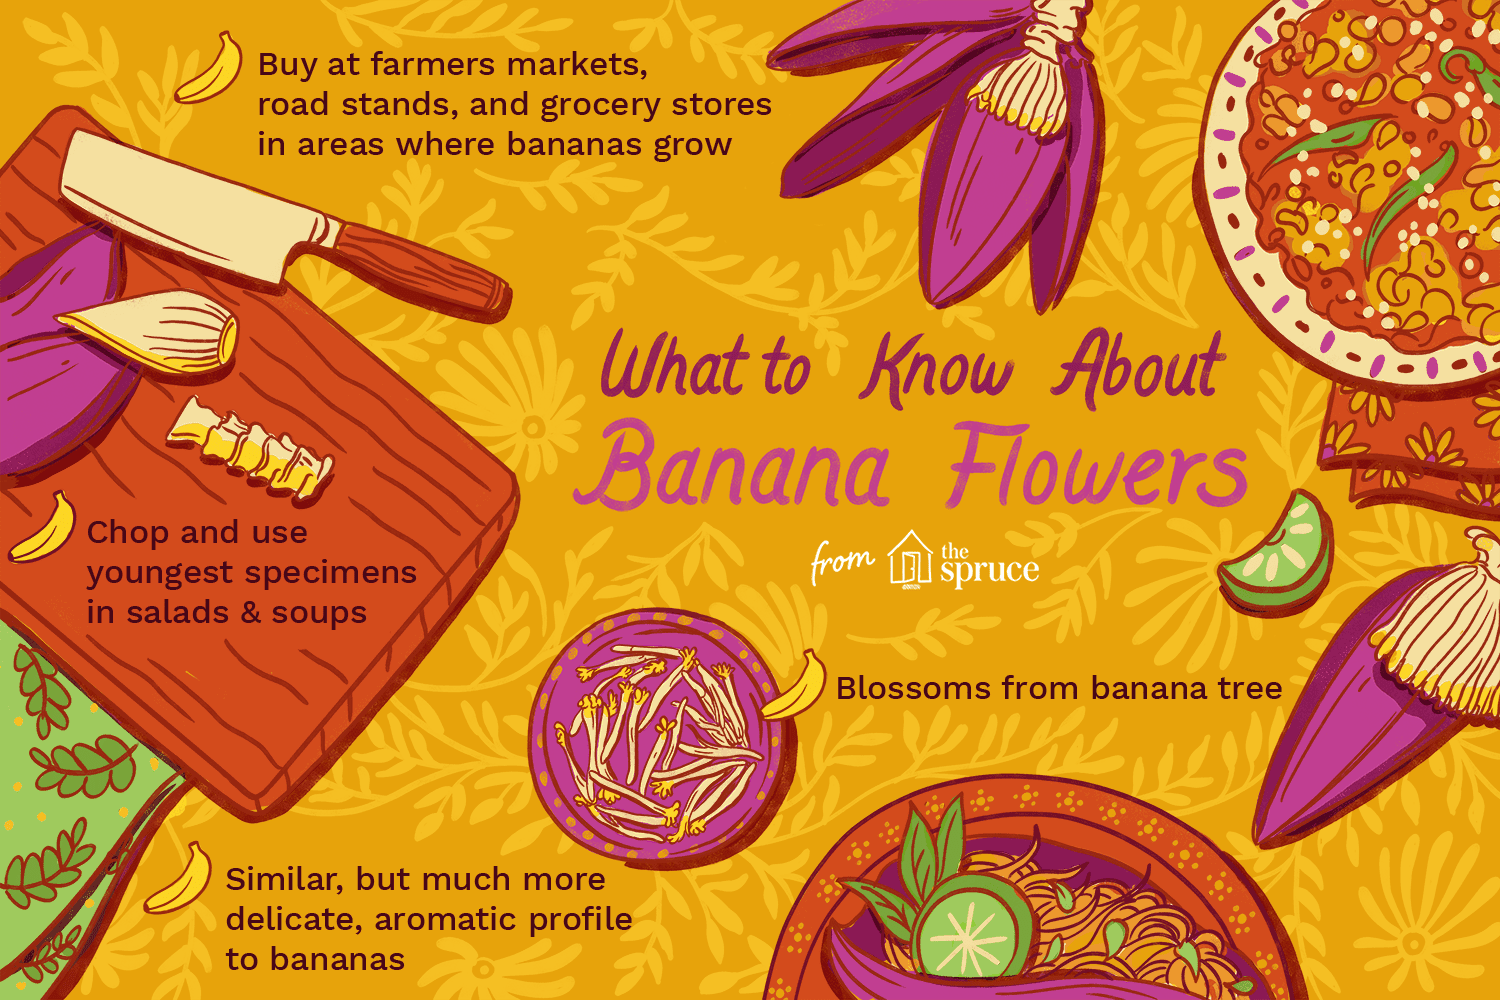 Information about banana flowers, how to buy, what they are, and what they taste like